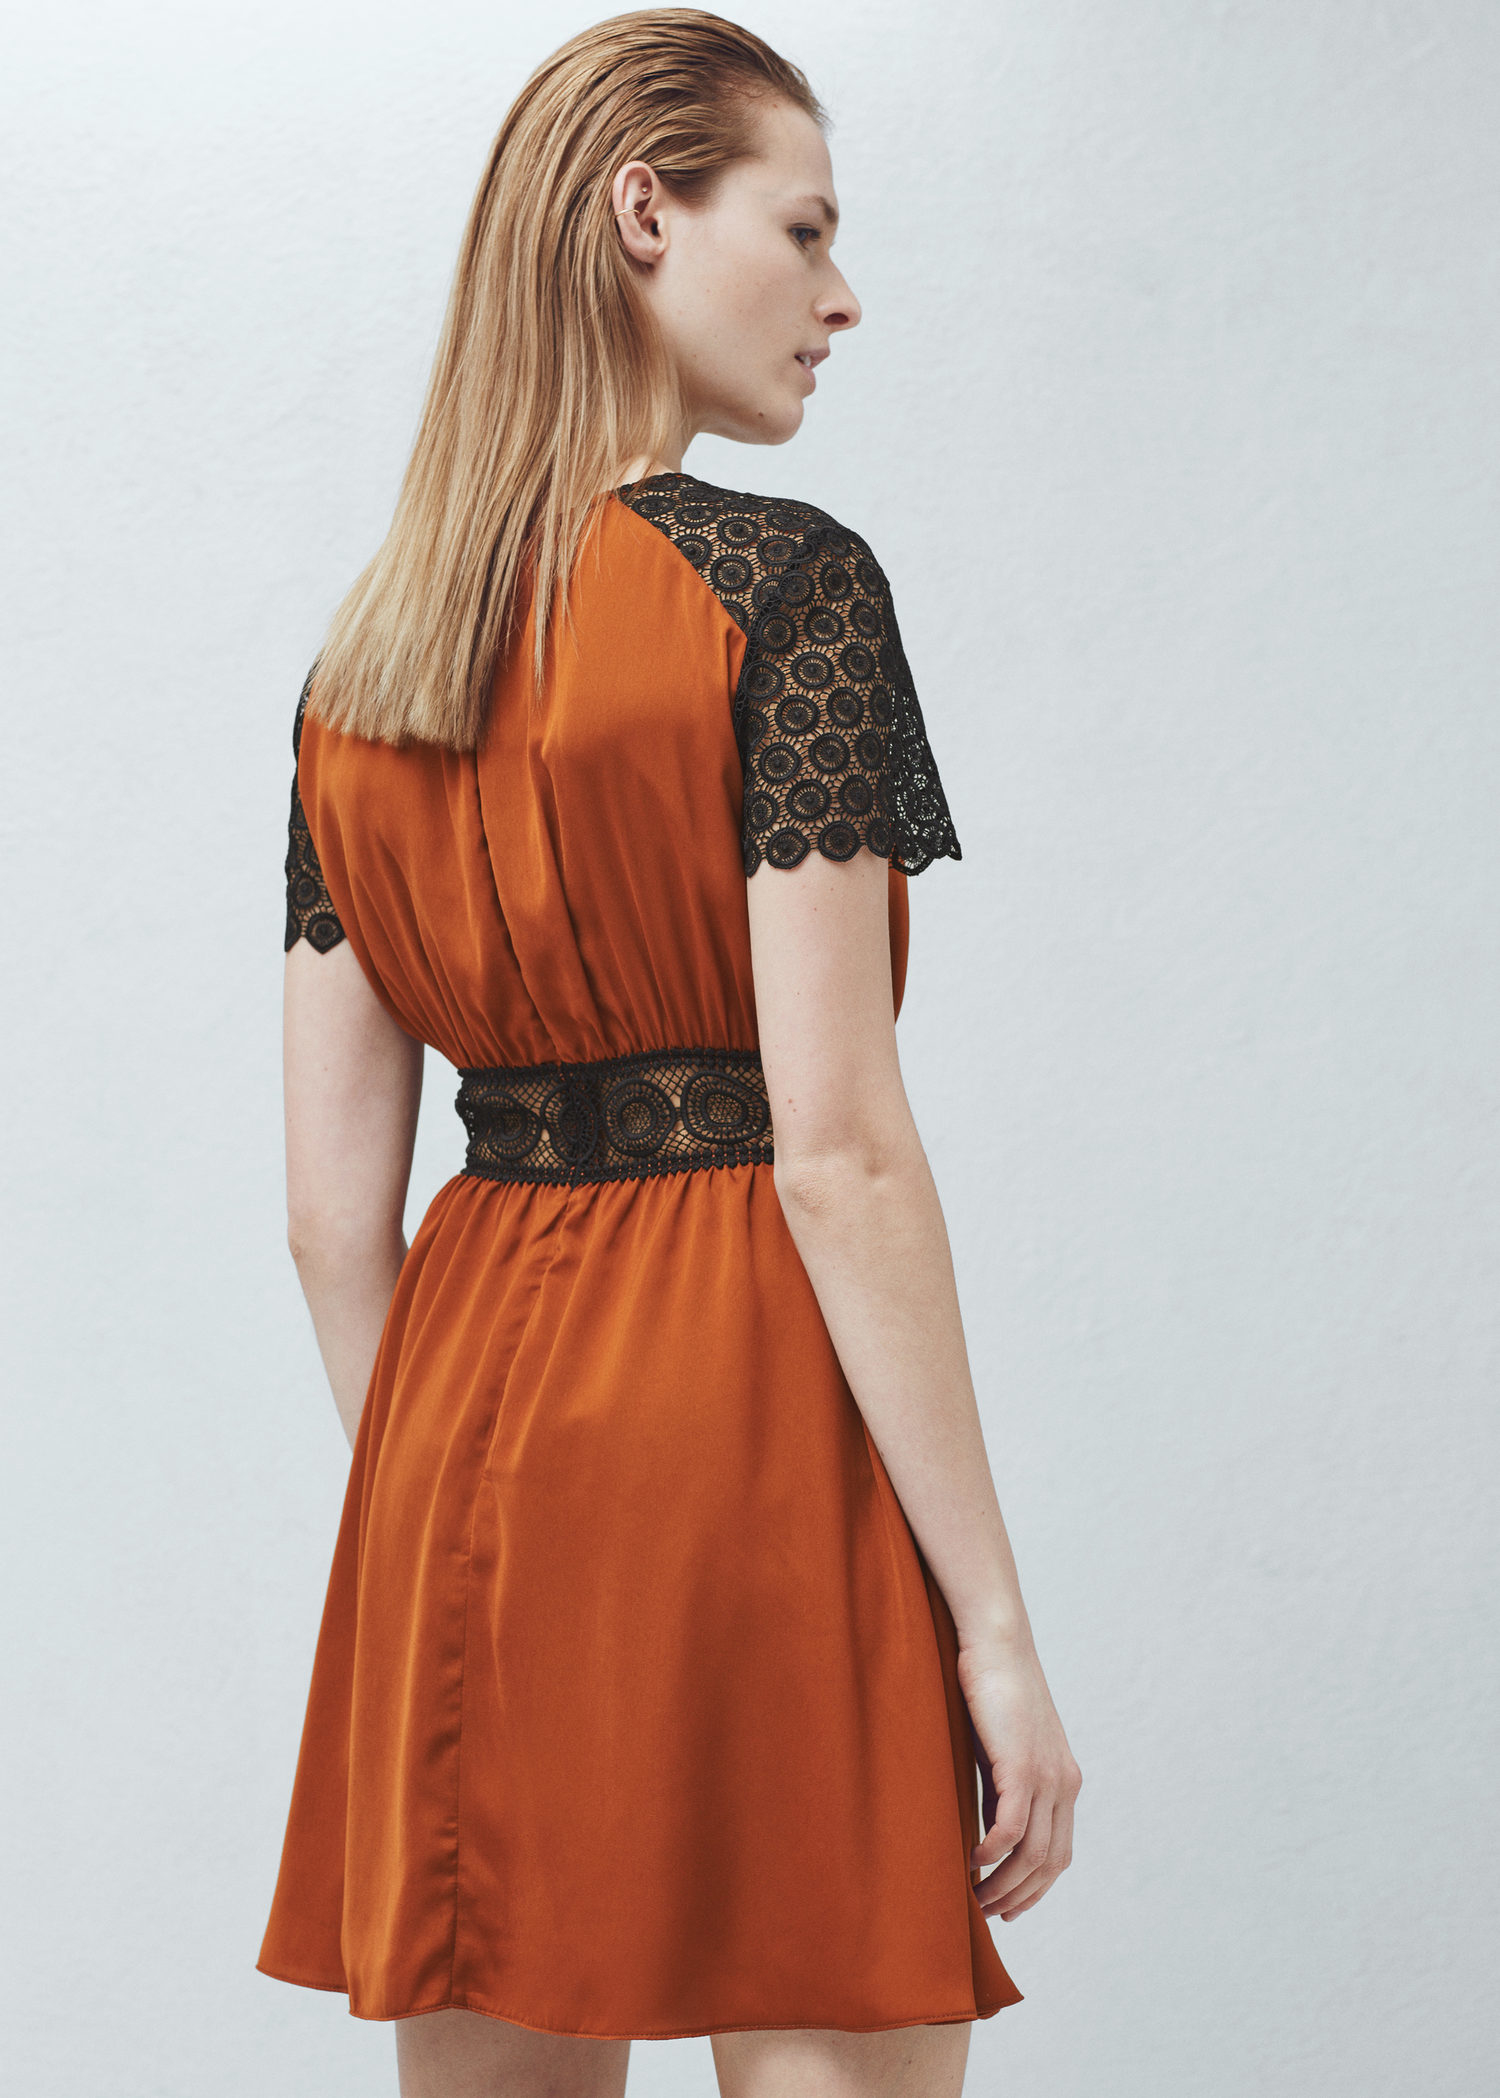 Mango red lace dress for sale